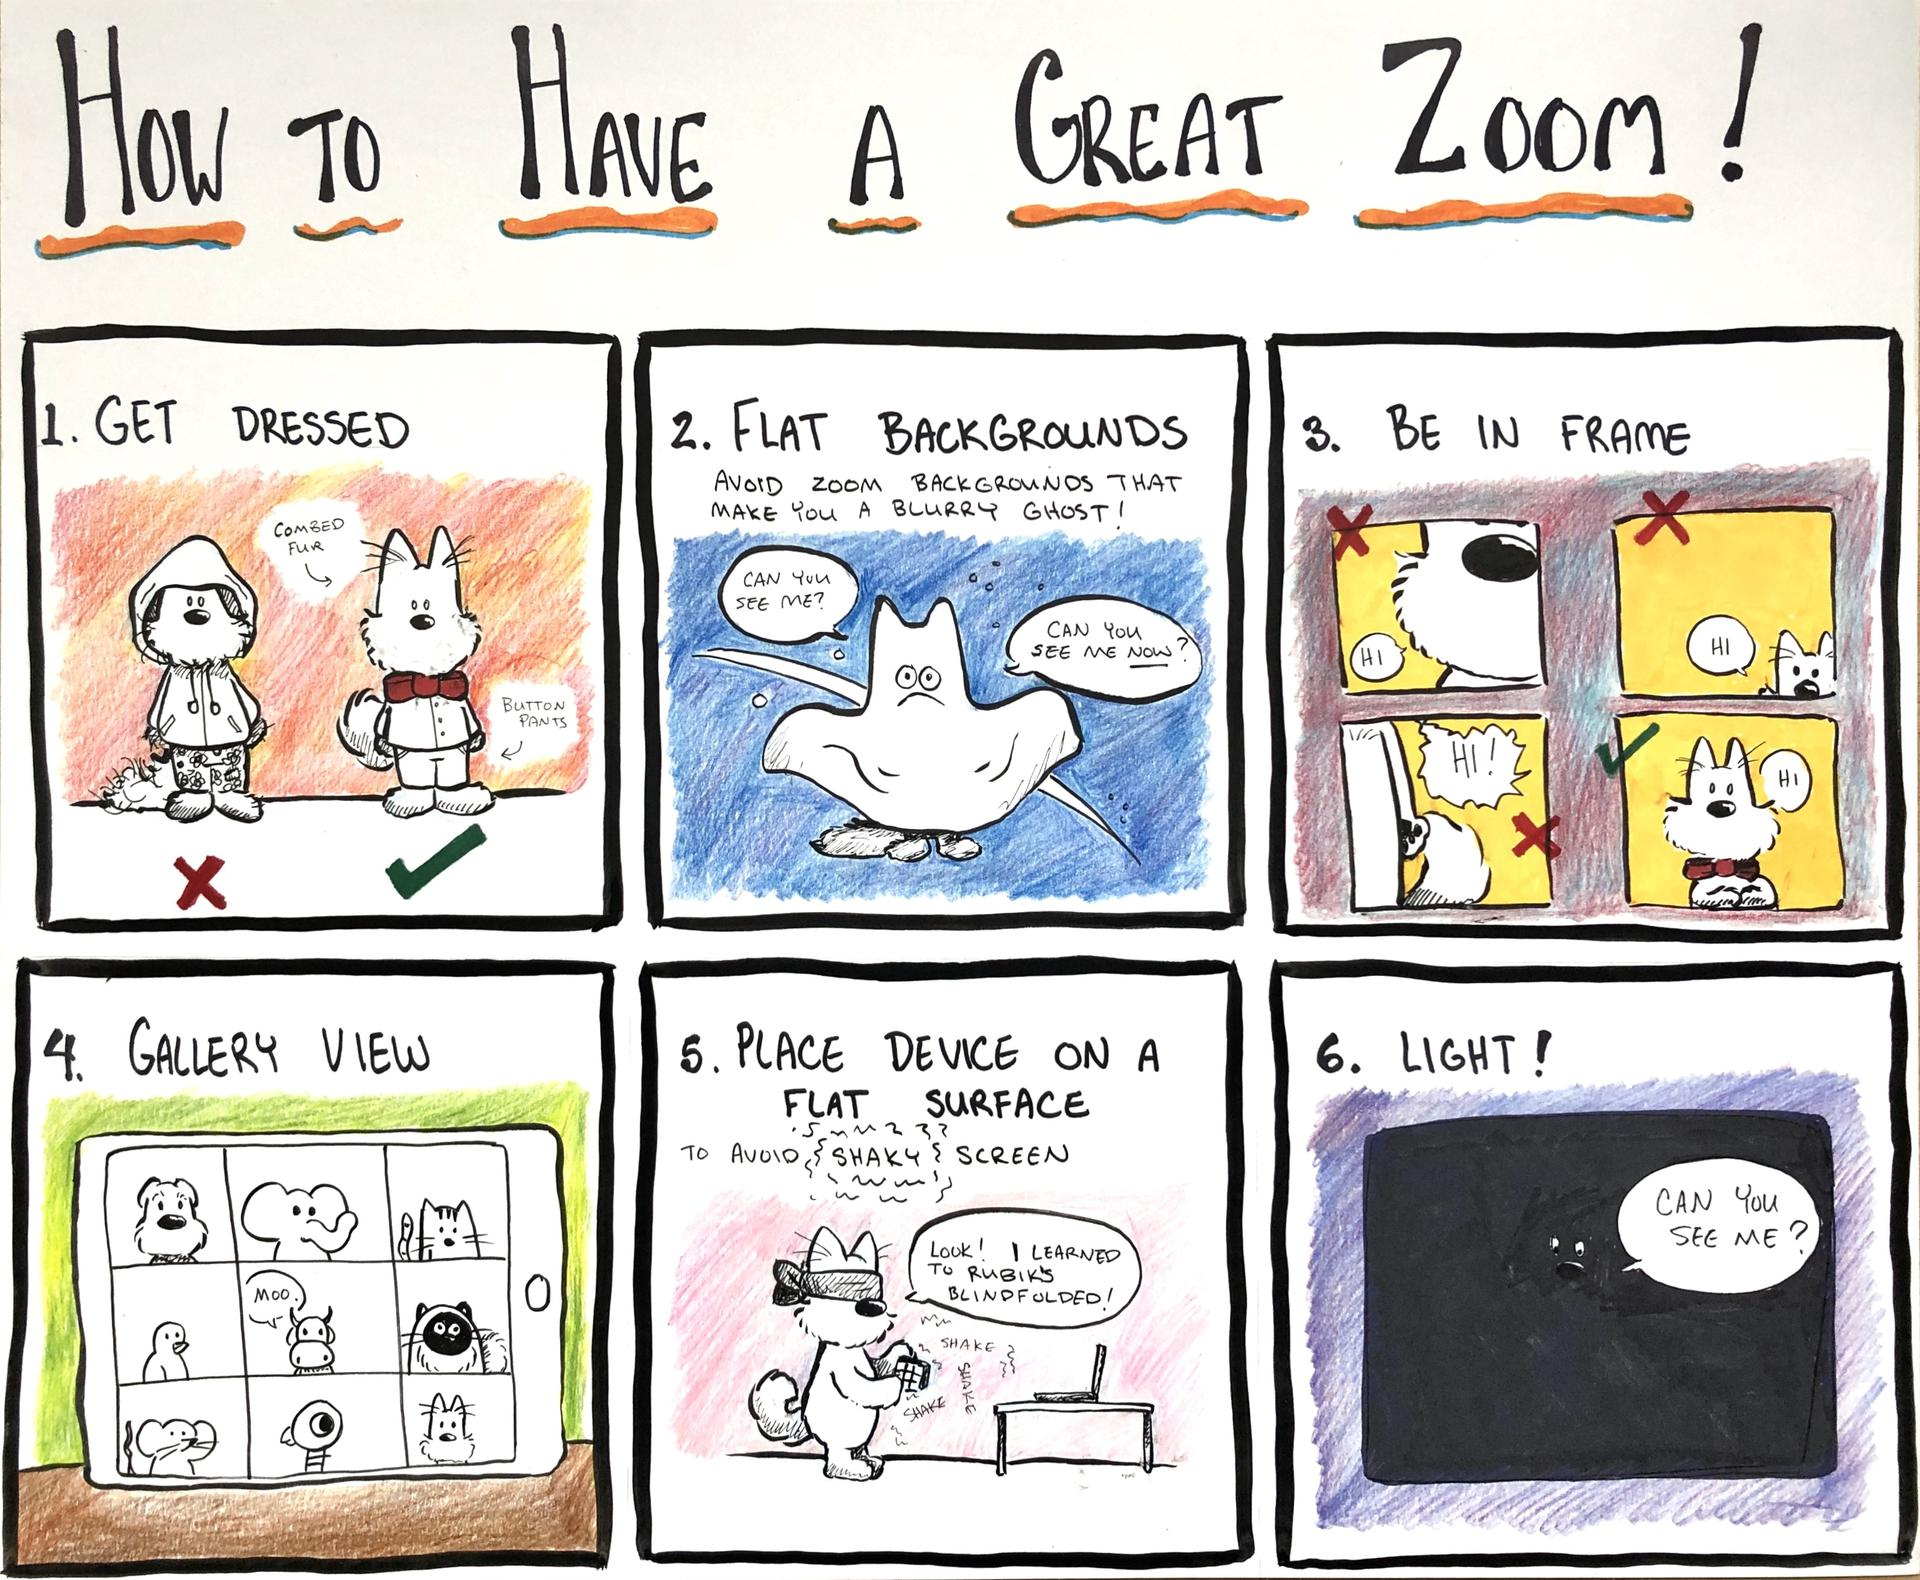 How to have a great zoom!